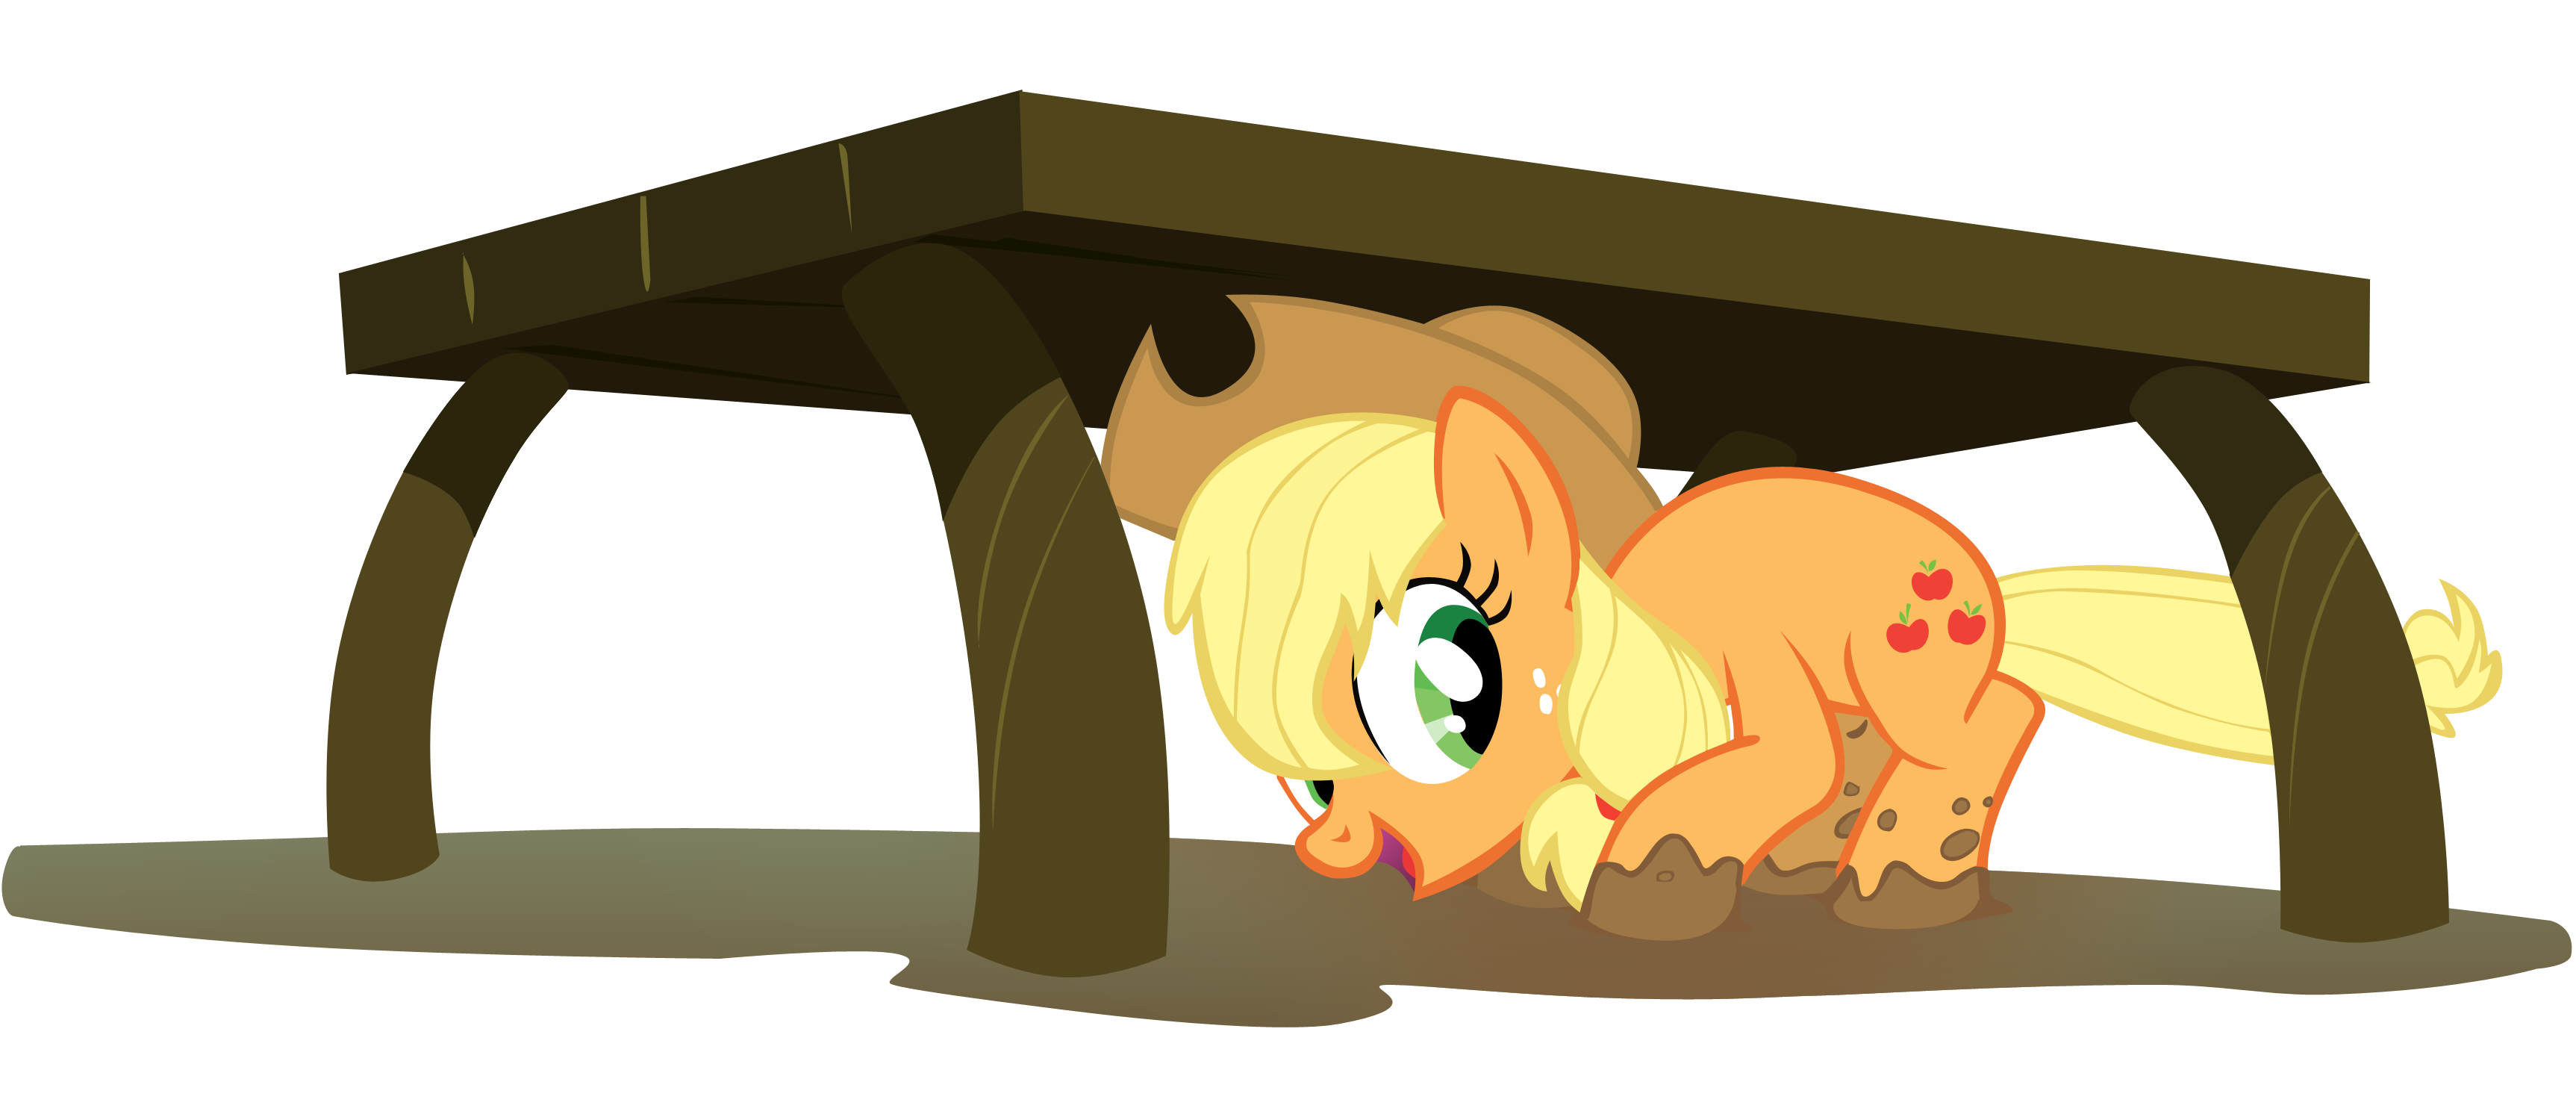 Dog under the table clipart clip royalty free stock Applejack under table by SierraEx on DeviantArt clip royalty free stock